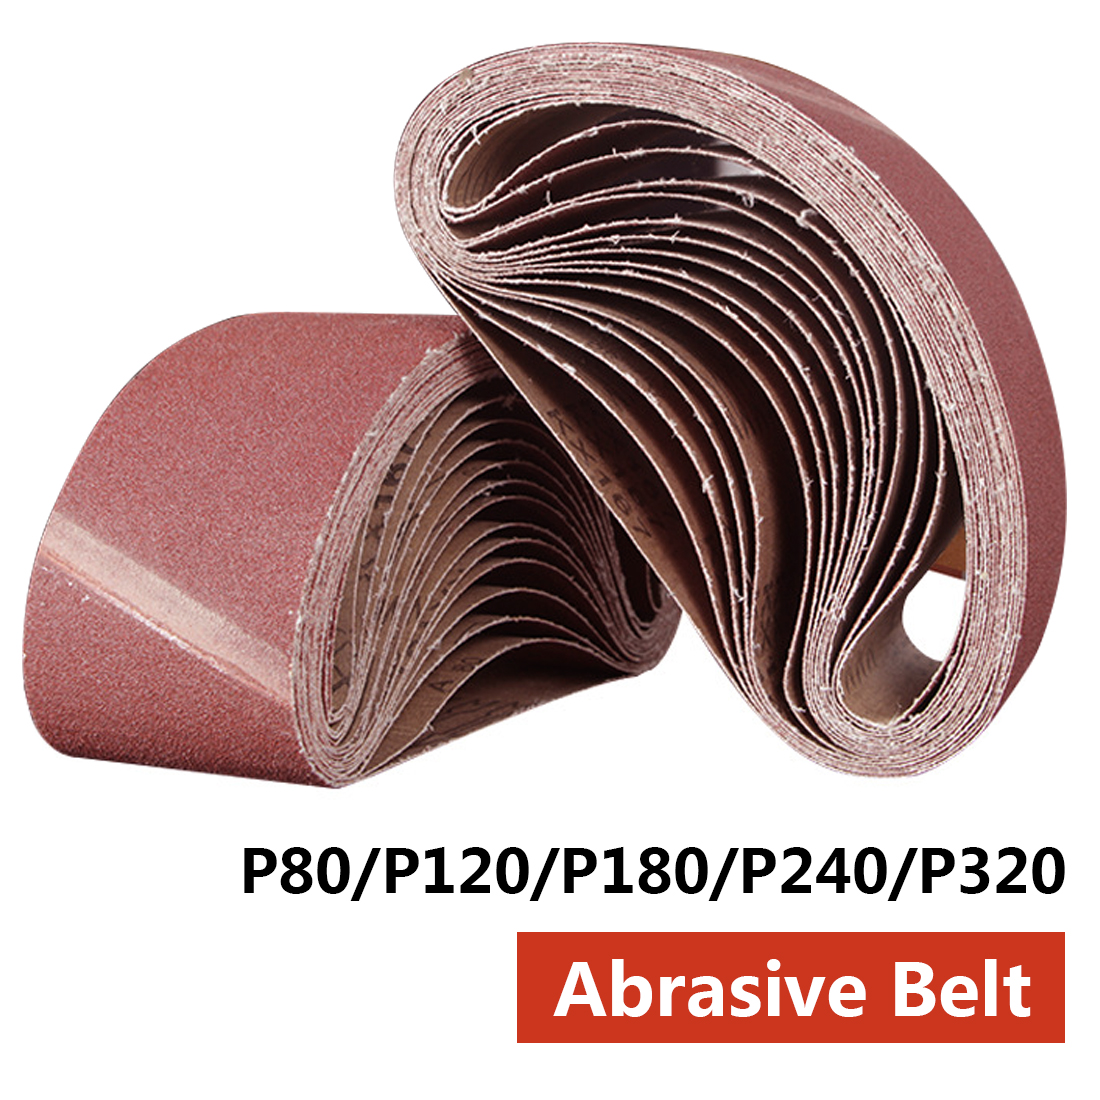 Tools Smart Abrasive Tool 533x75mm Sanding Belts 80-320 Grits Sandpaper Abrasive Bands For Sander Power Rotary Tools Dremel Accessories 2019 Latest Style Online Sale 50%